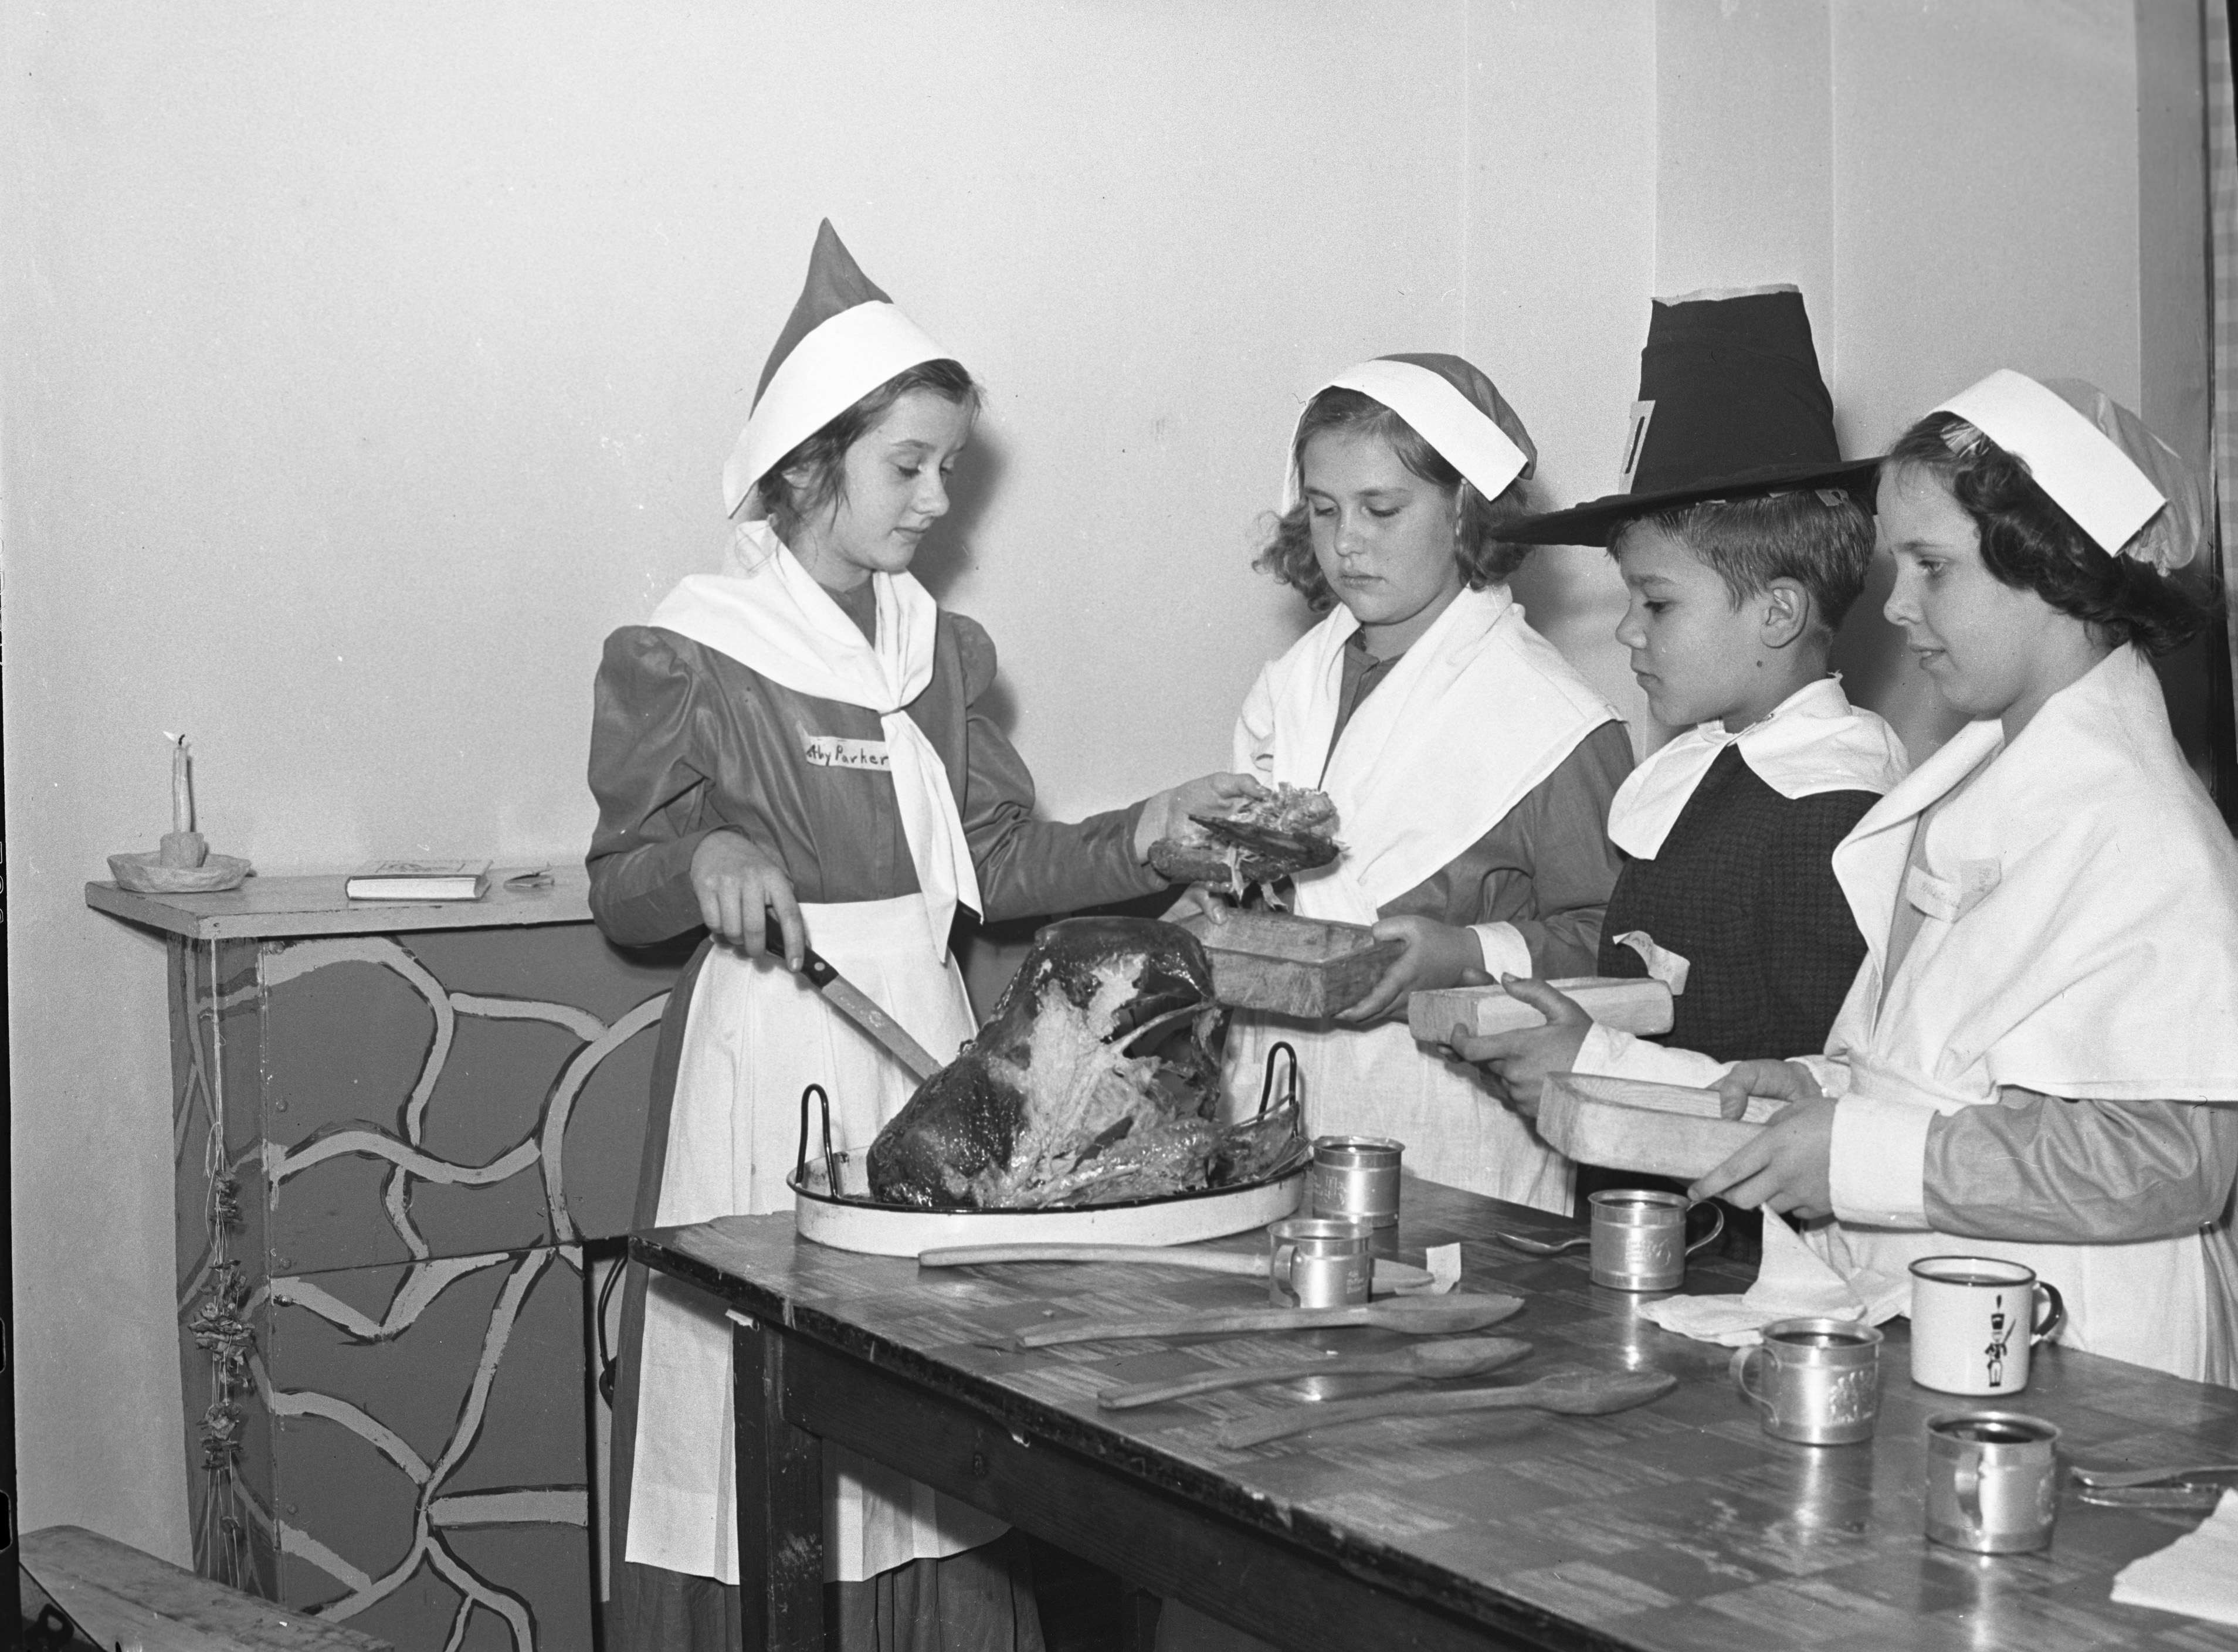 Mack School students have Thanksgiving dinner in pilgrim costumes, December 1939 image